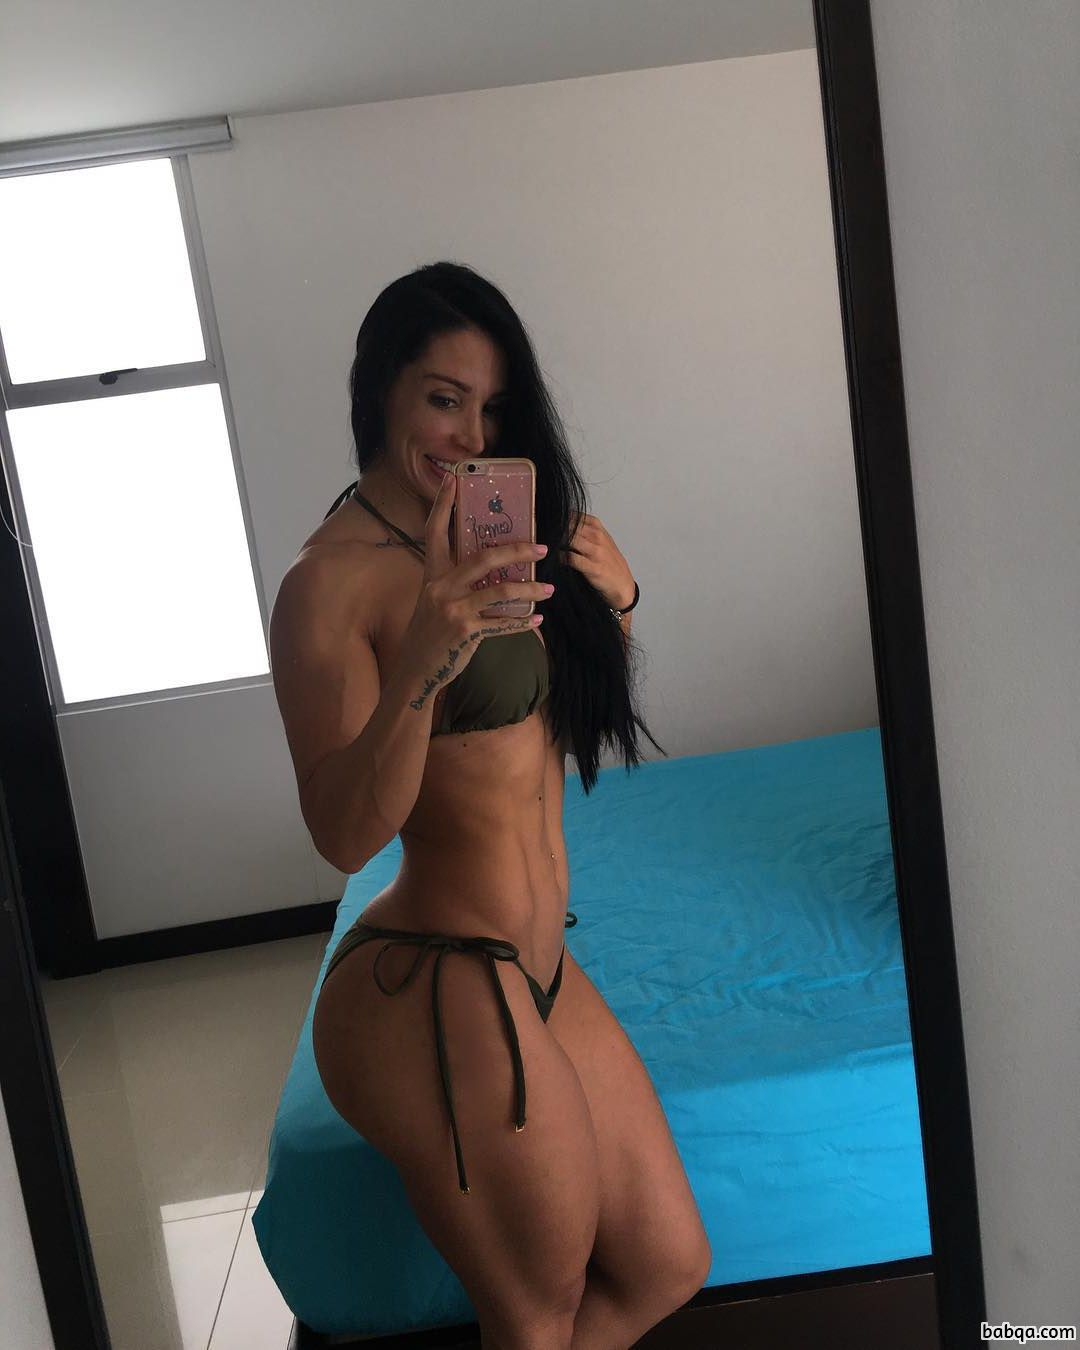 beautiful female with strong body and muscle booty photo from insta